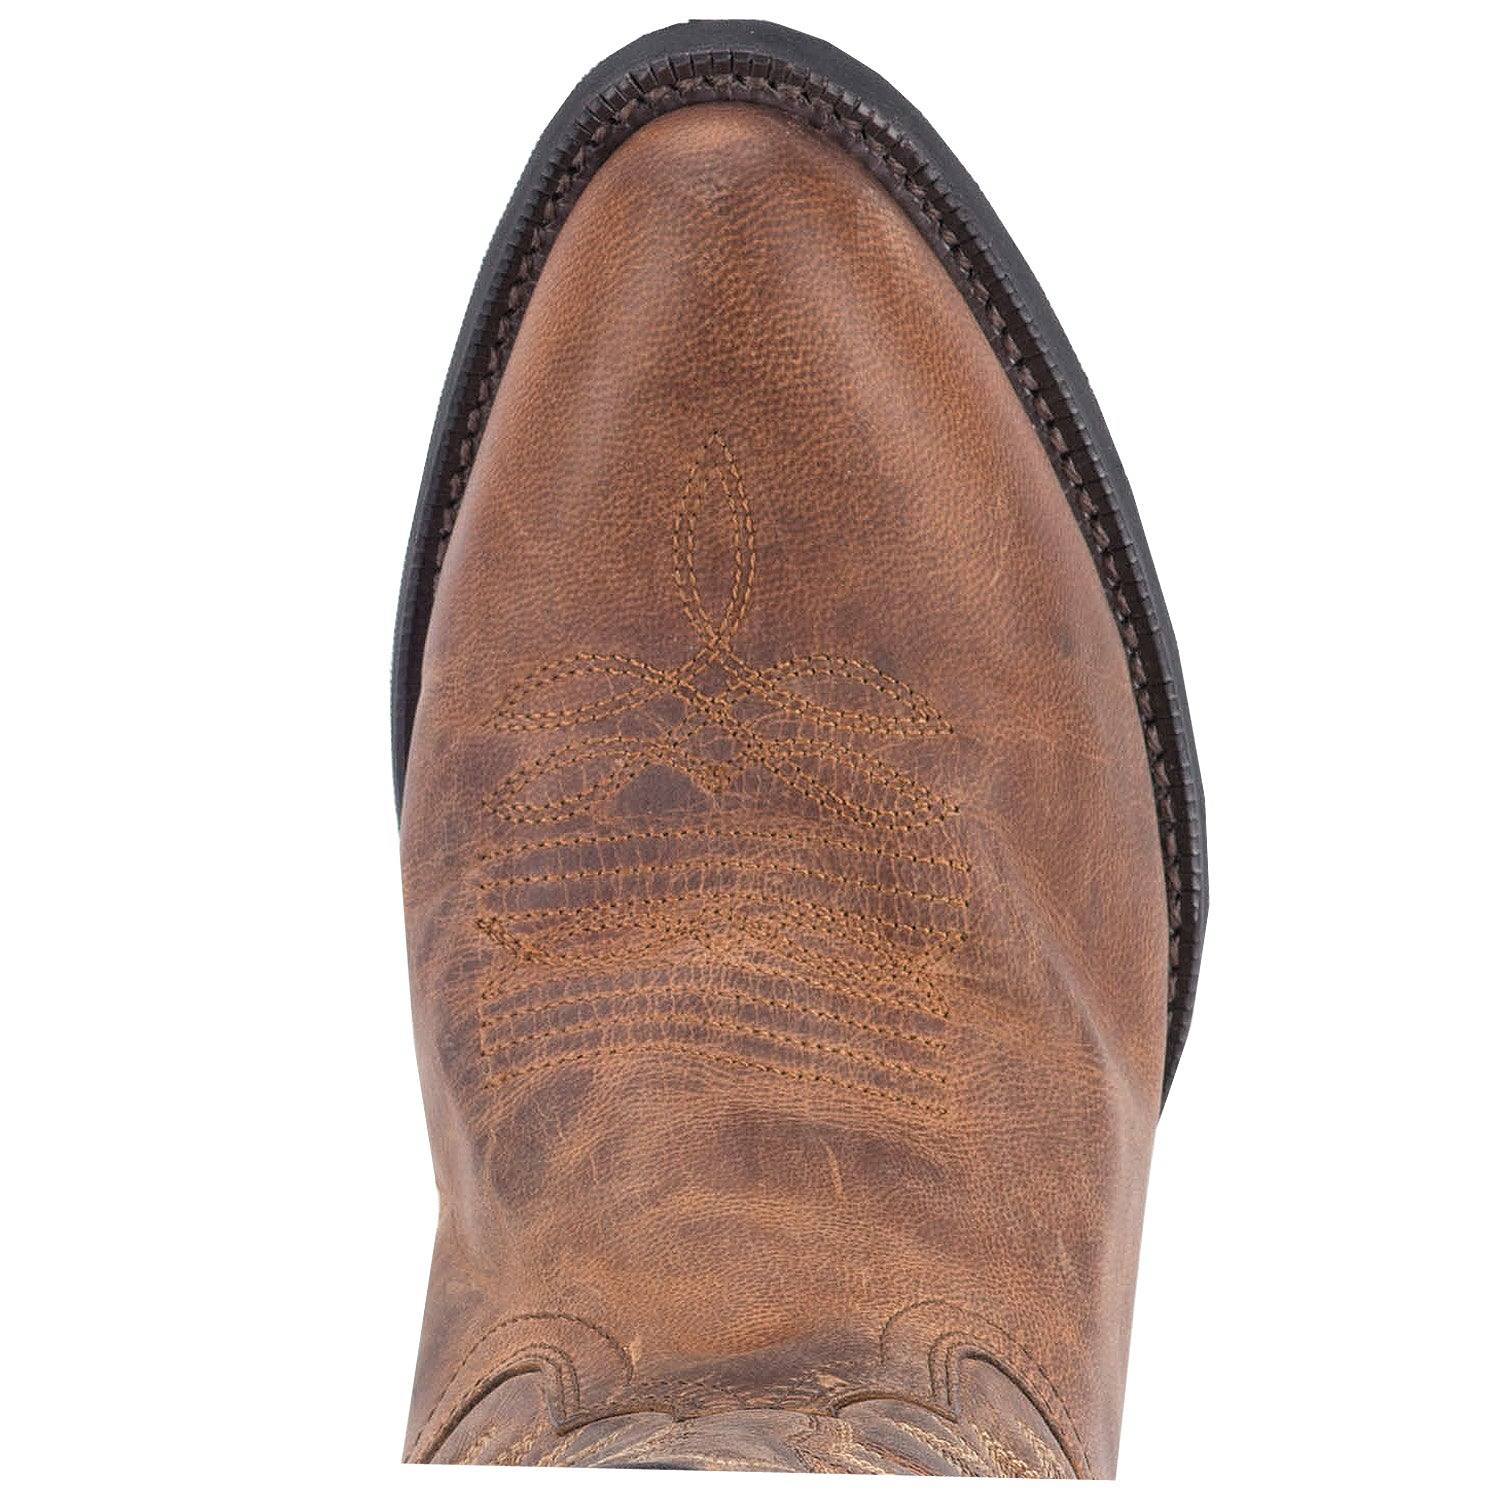 BIRCHWOOD LEATHER BOOT 4410064764970